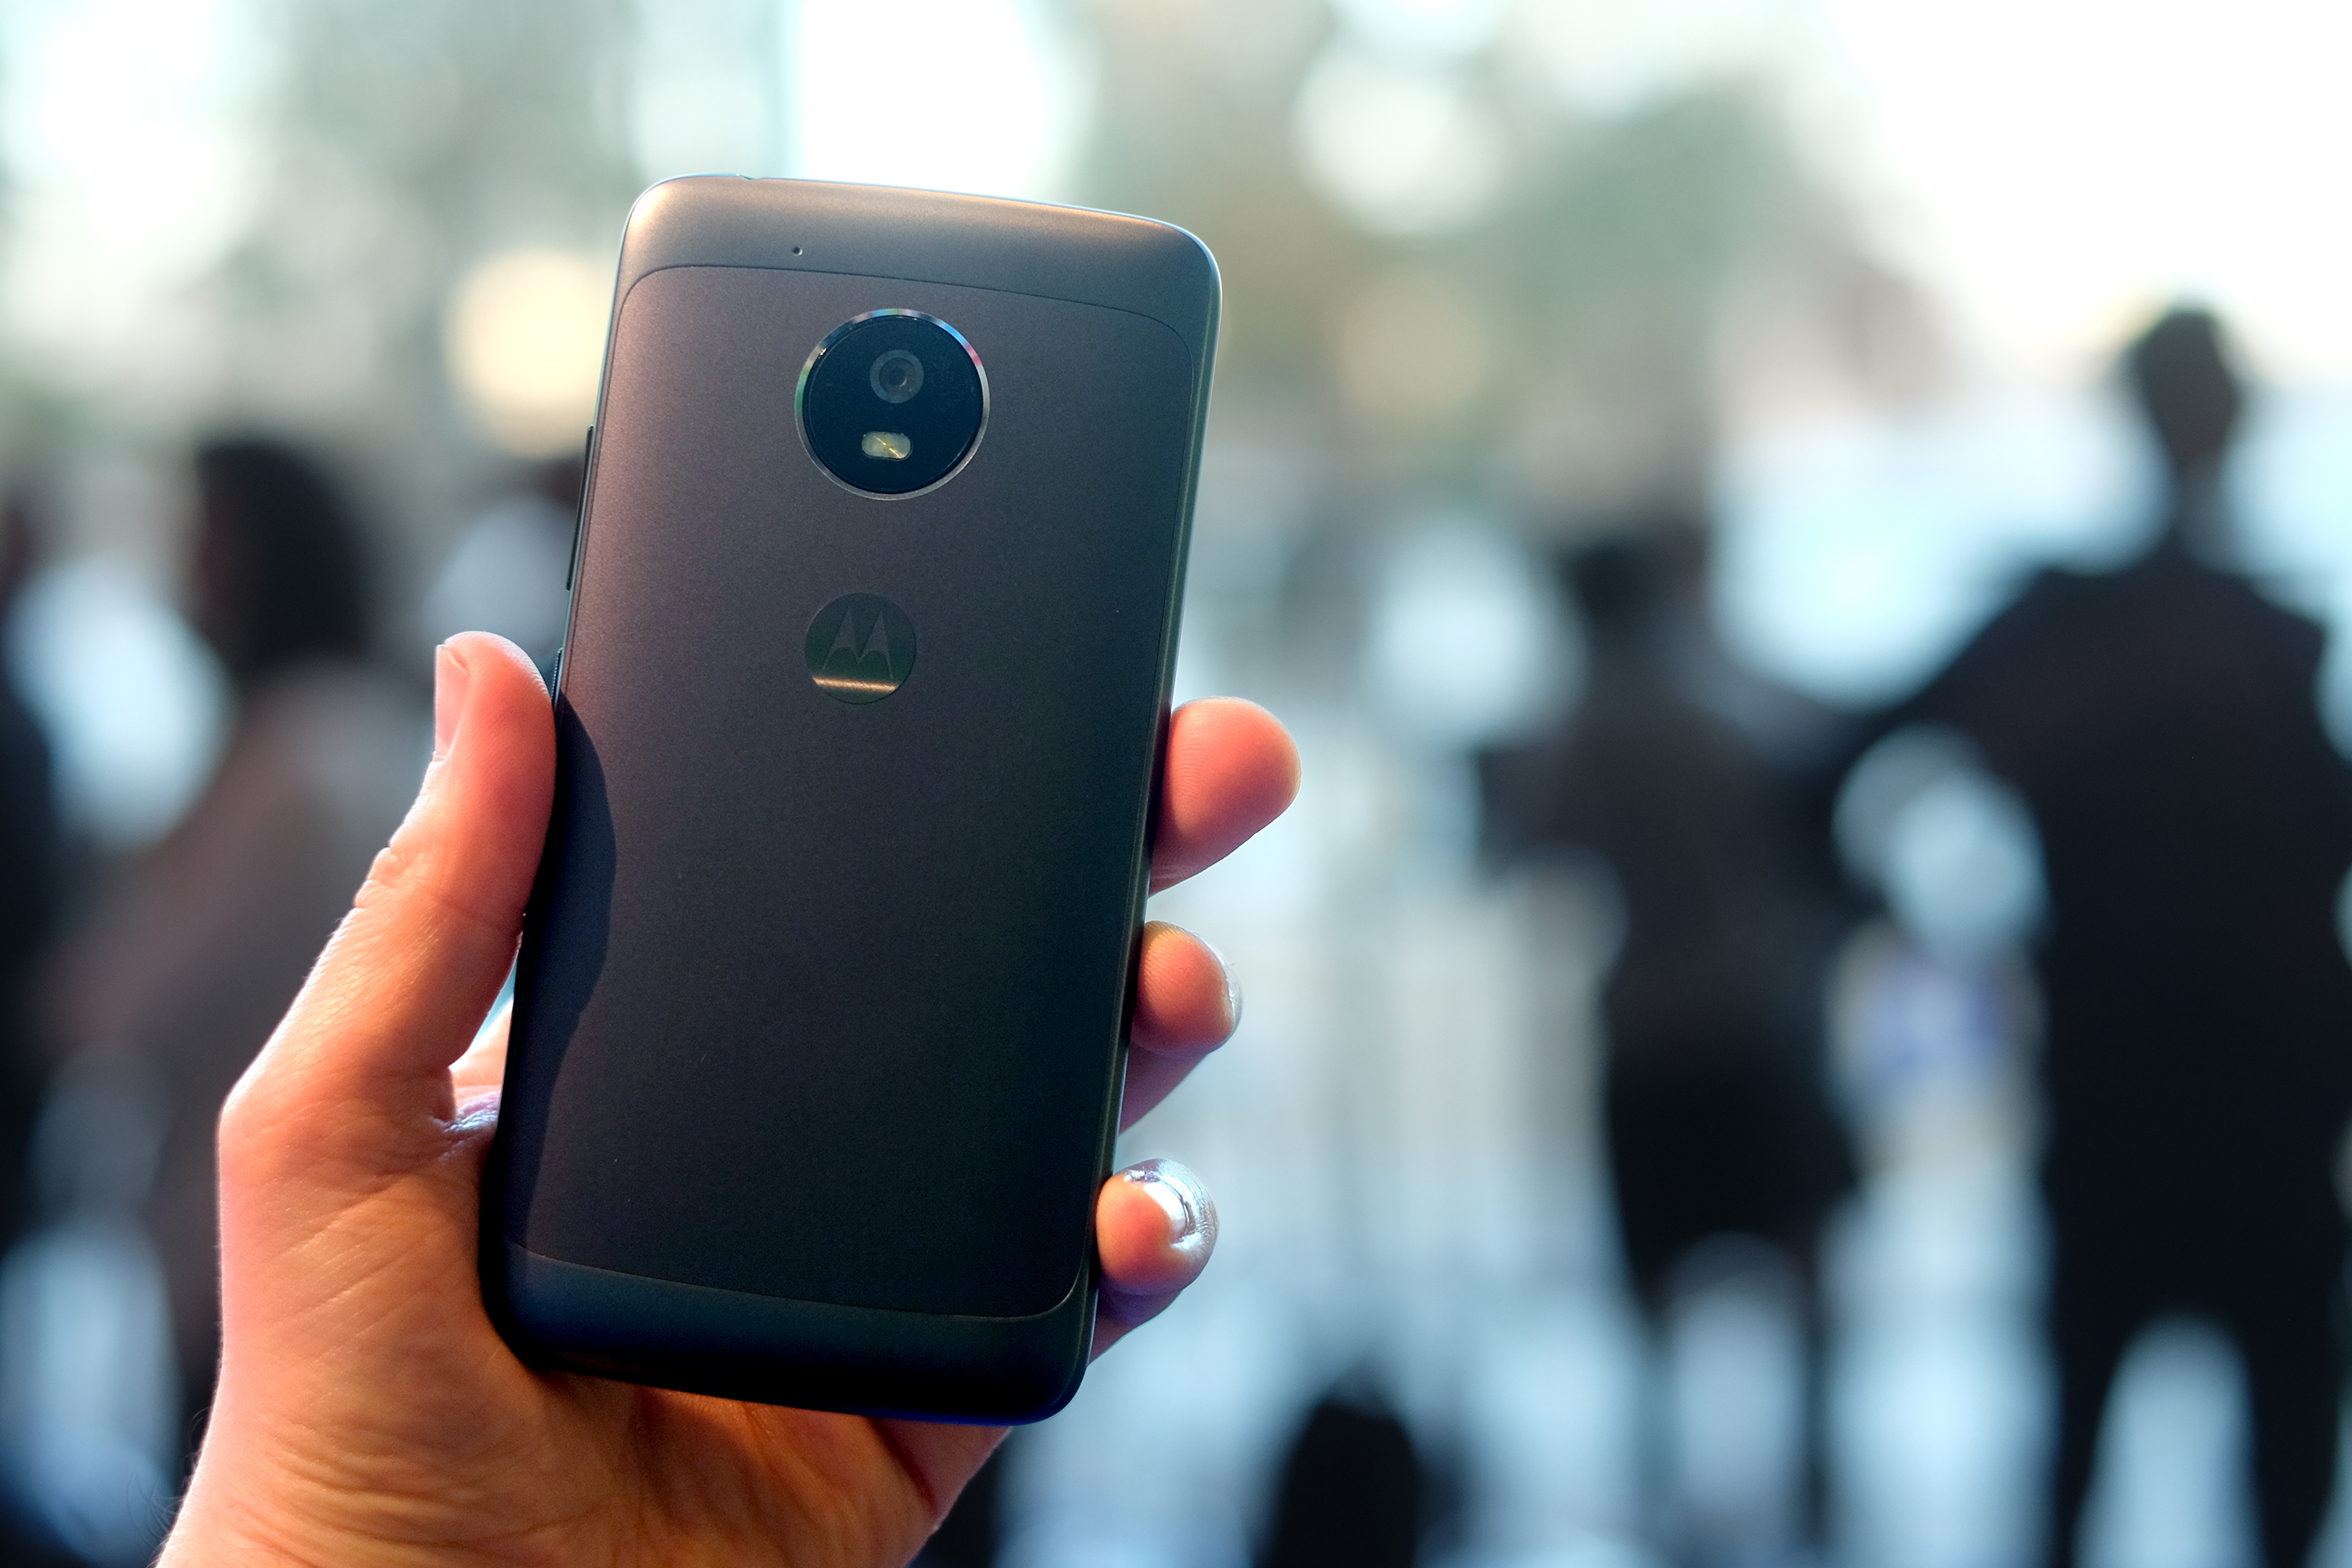 A beefy camera on the back of the Moto G5 Plus.